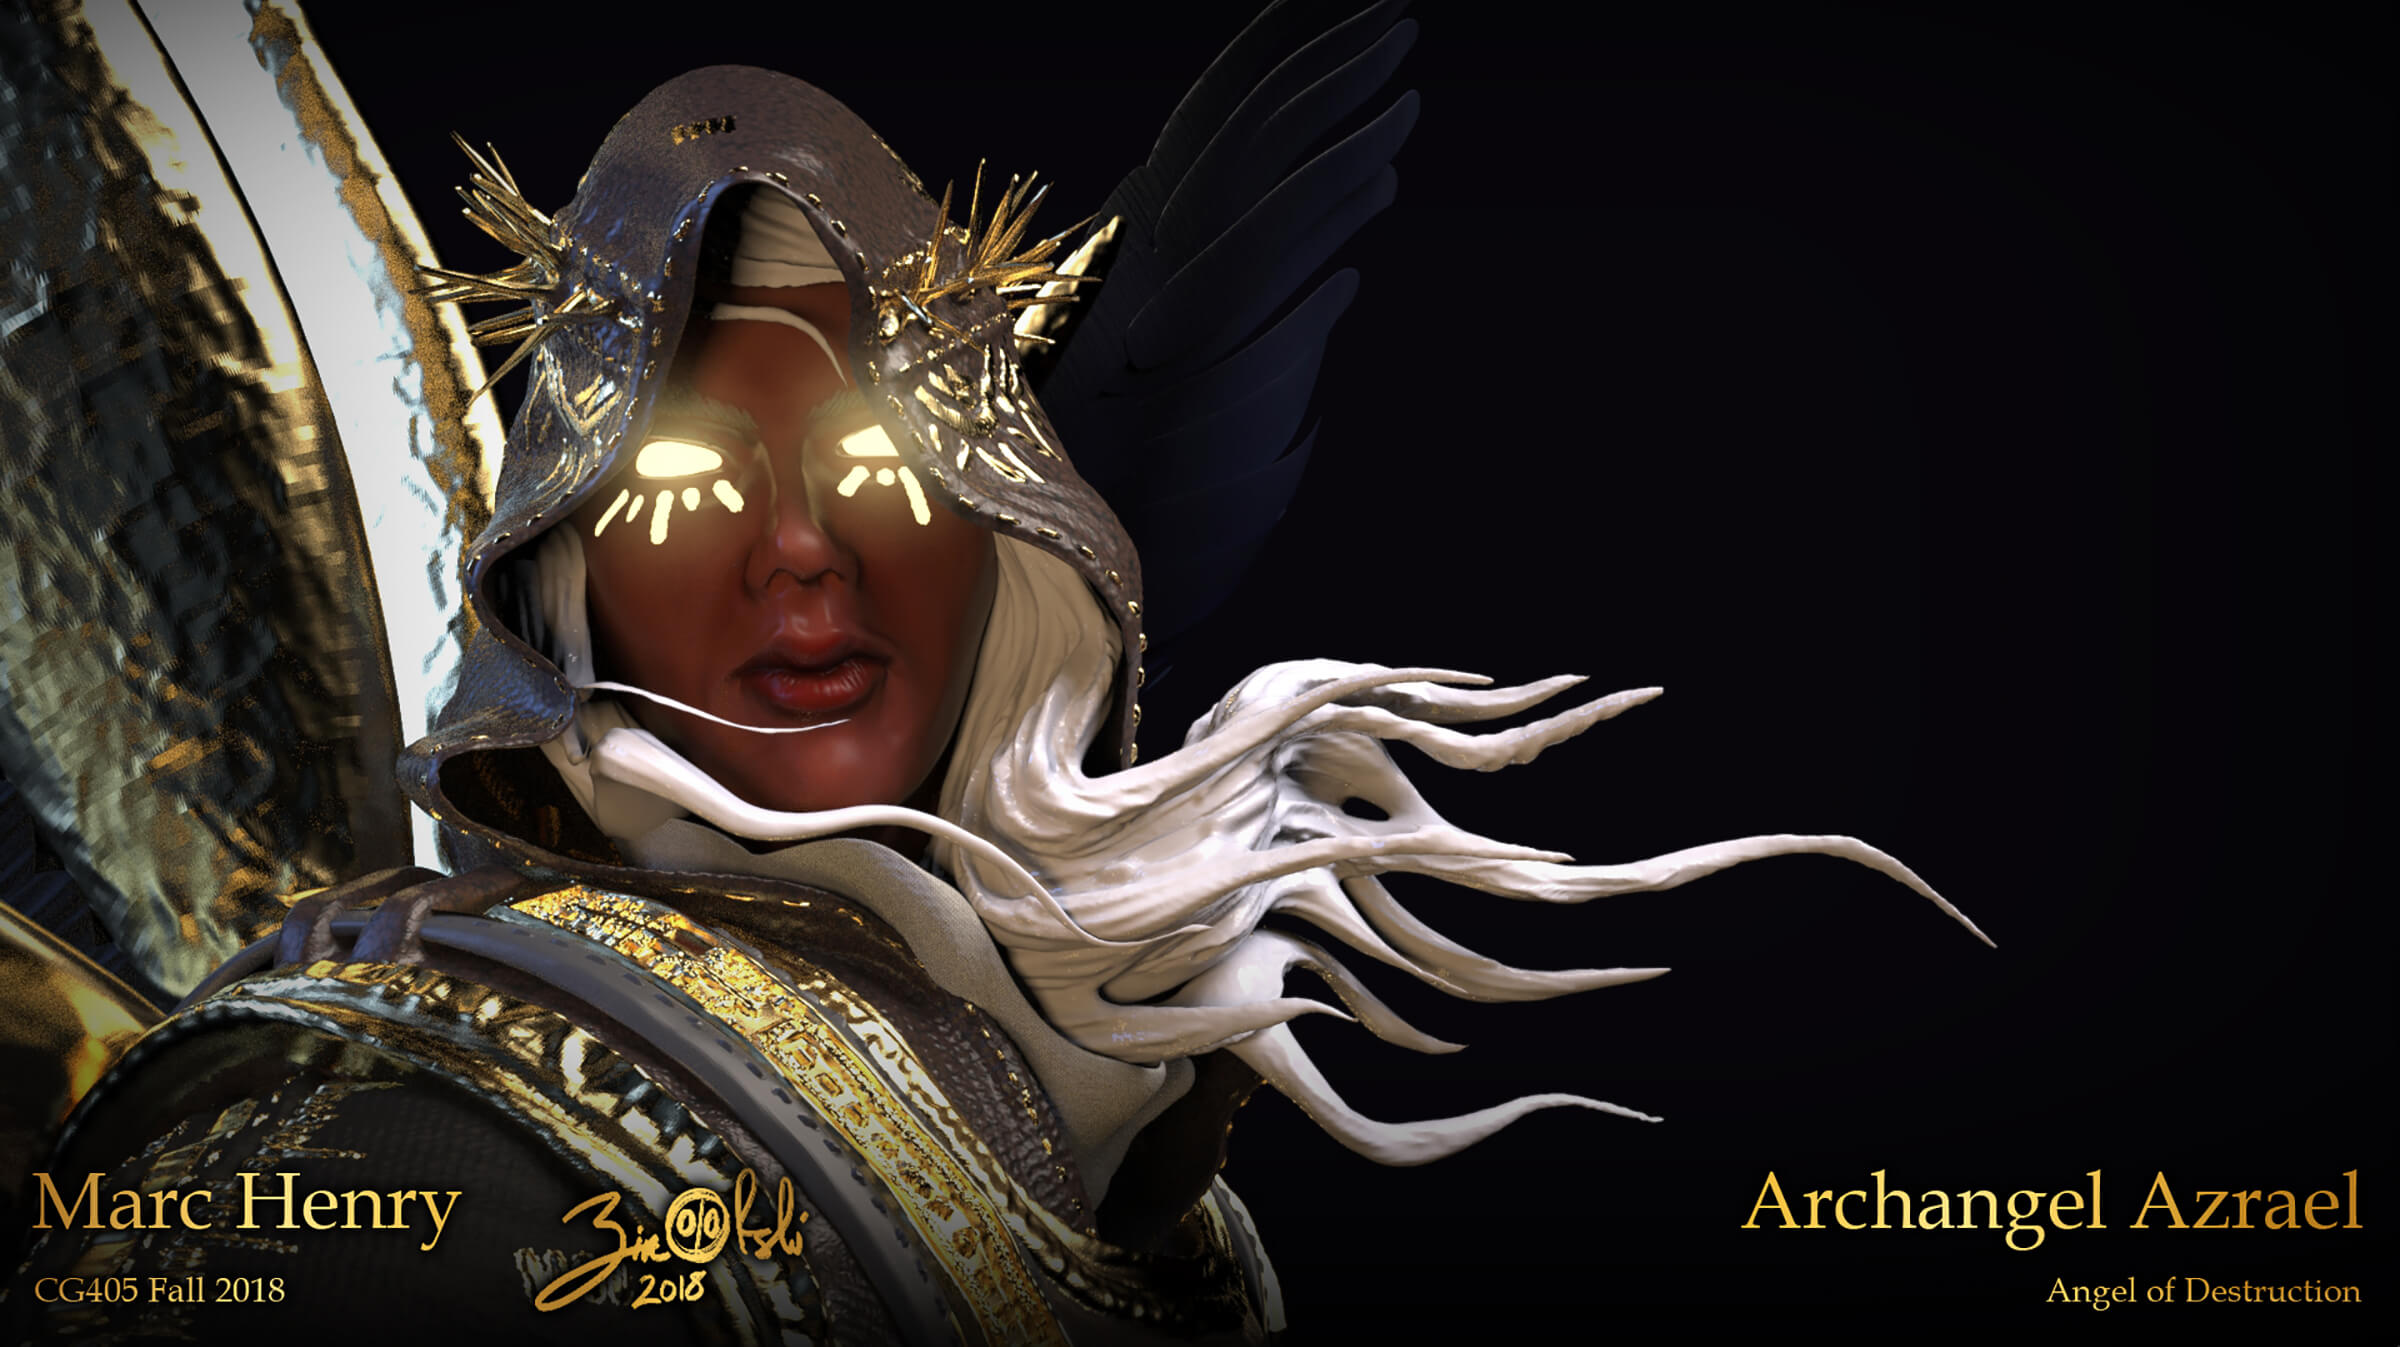 A character with glowing gold eyes, a dark spiked hood, and white hair